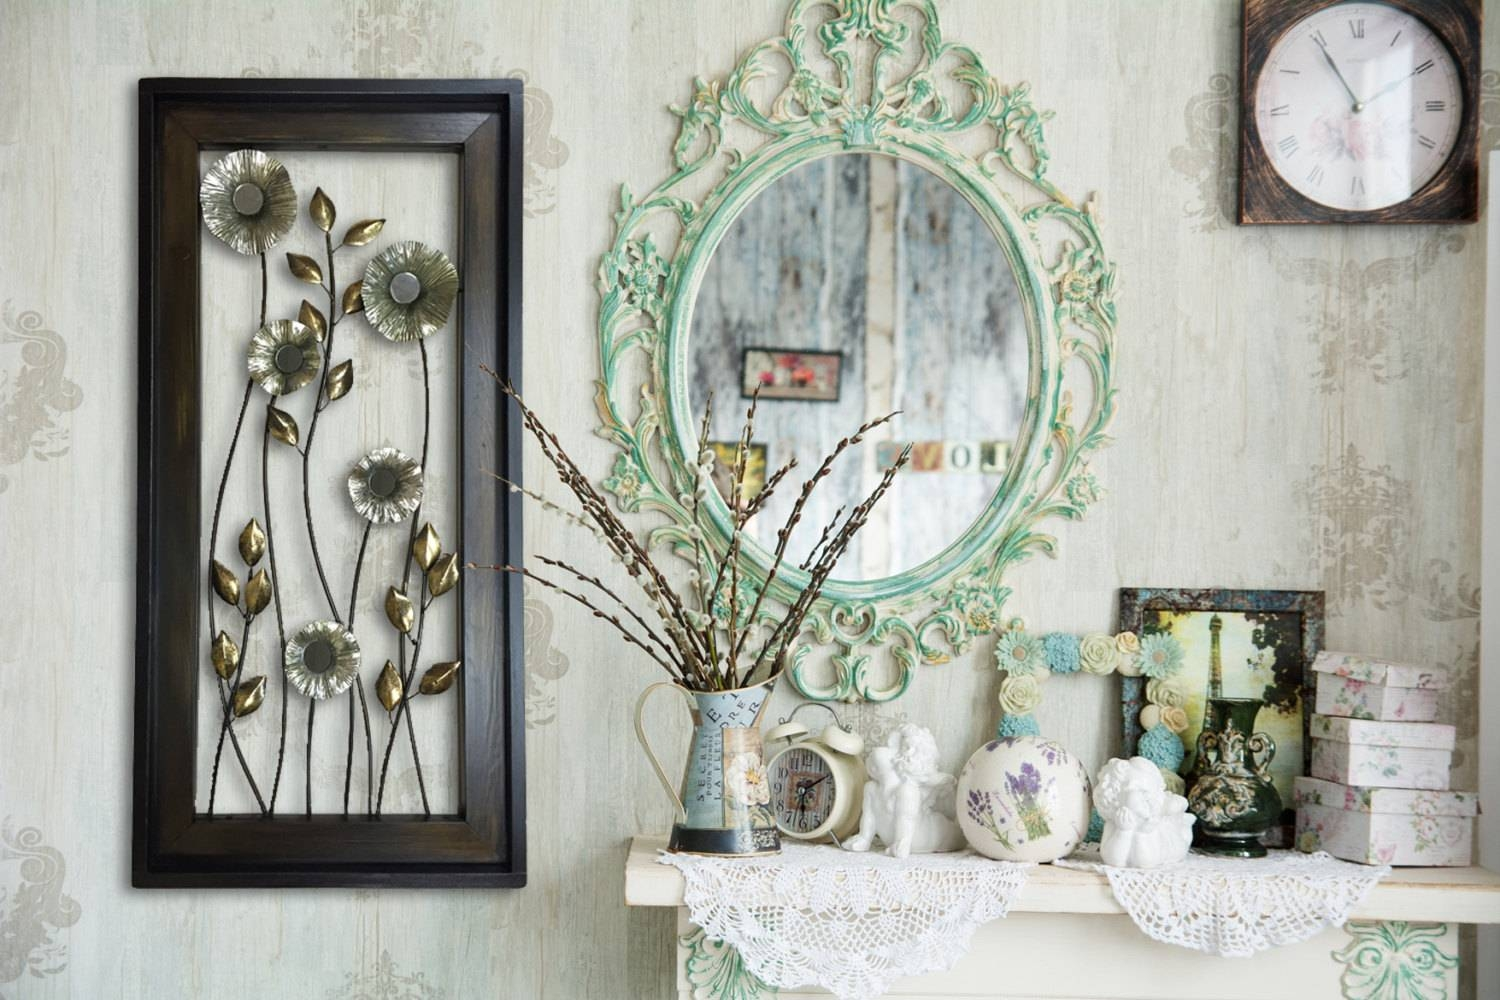 Metal Wall Art Wood Framed Flowers Mirrors Home Decor Large Inside Latest Vertical Metal Wall Art (View 11 of 20)